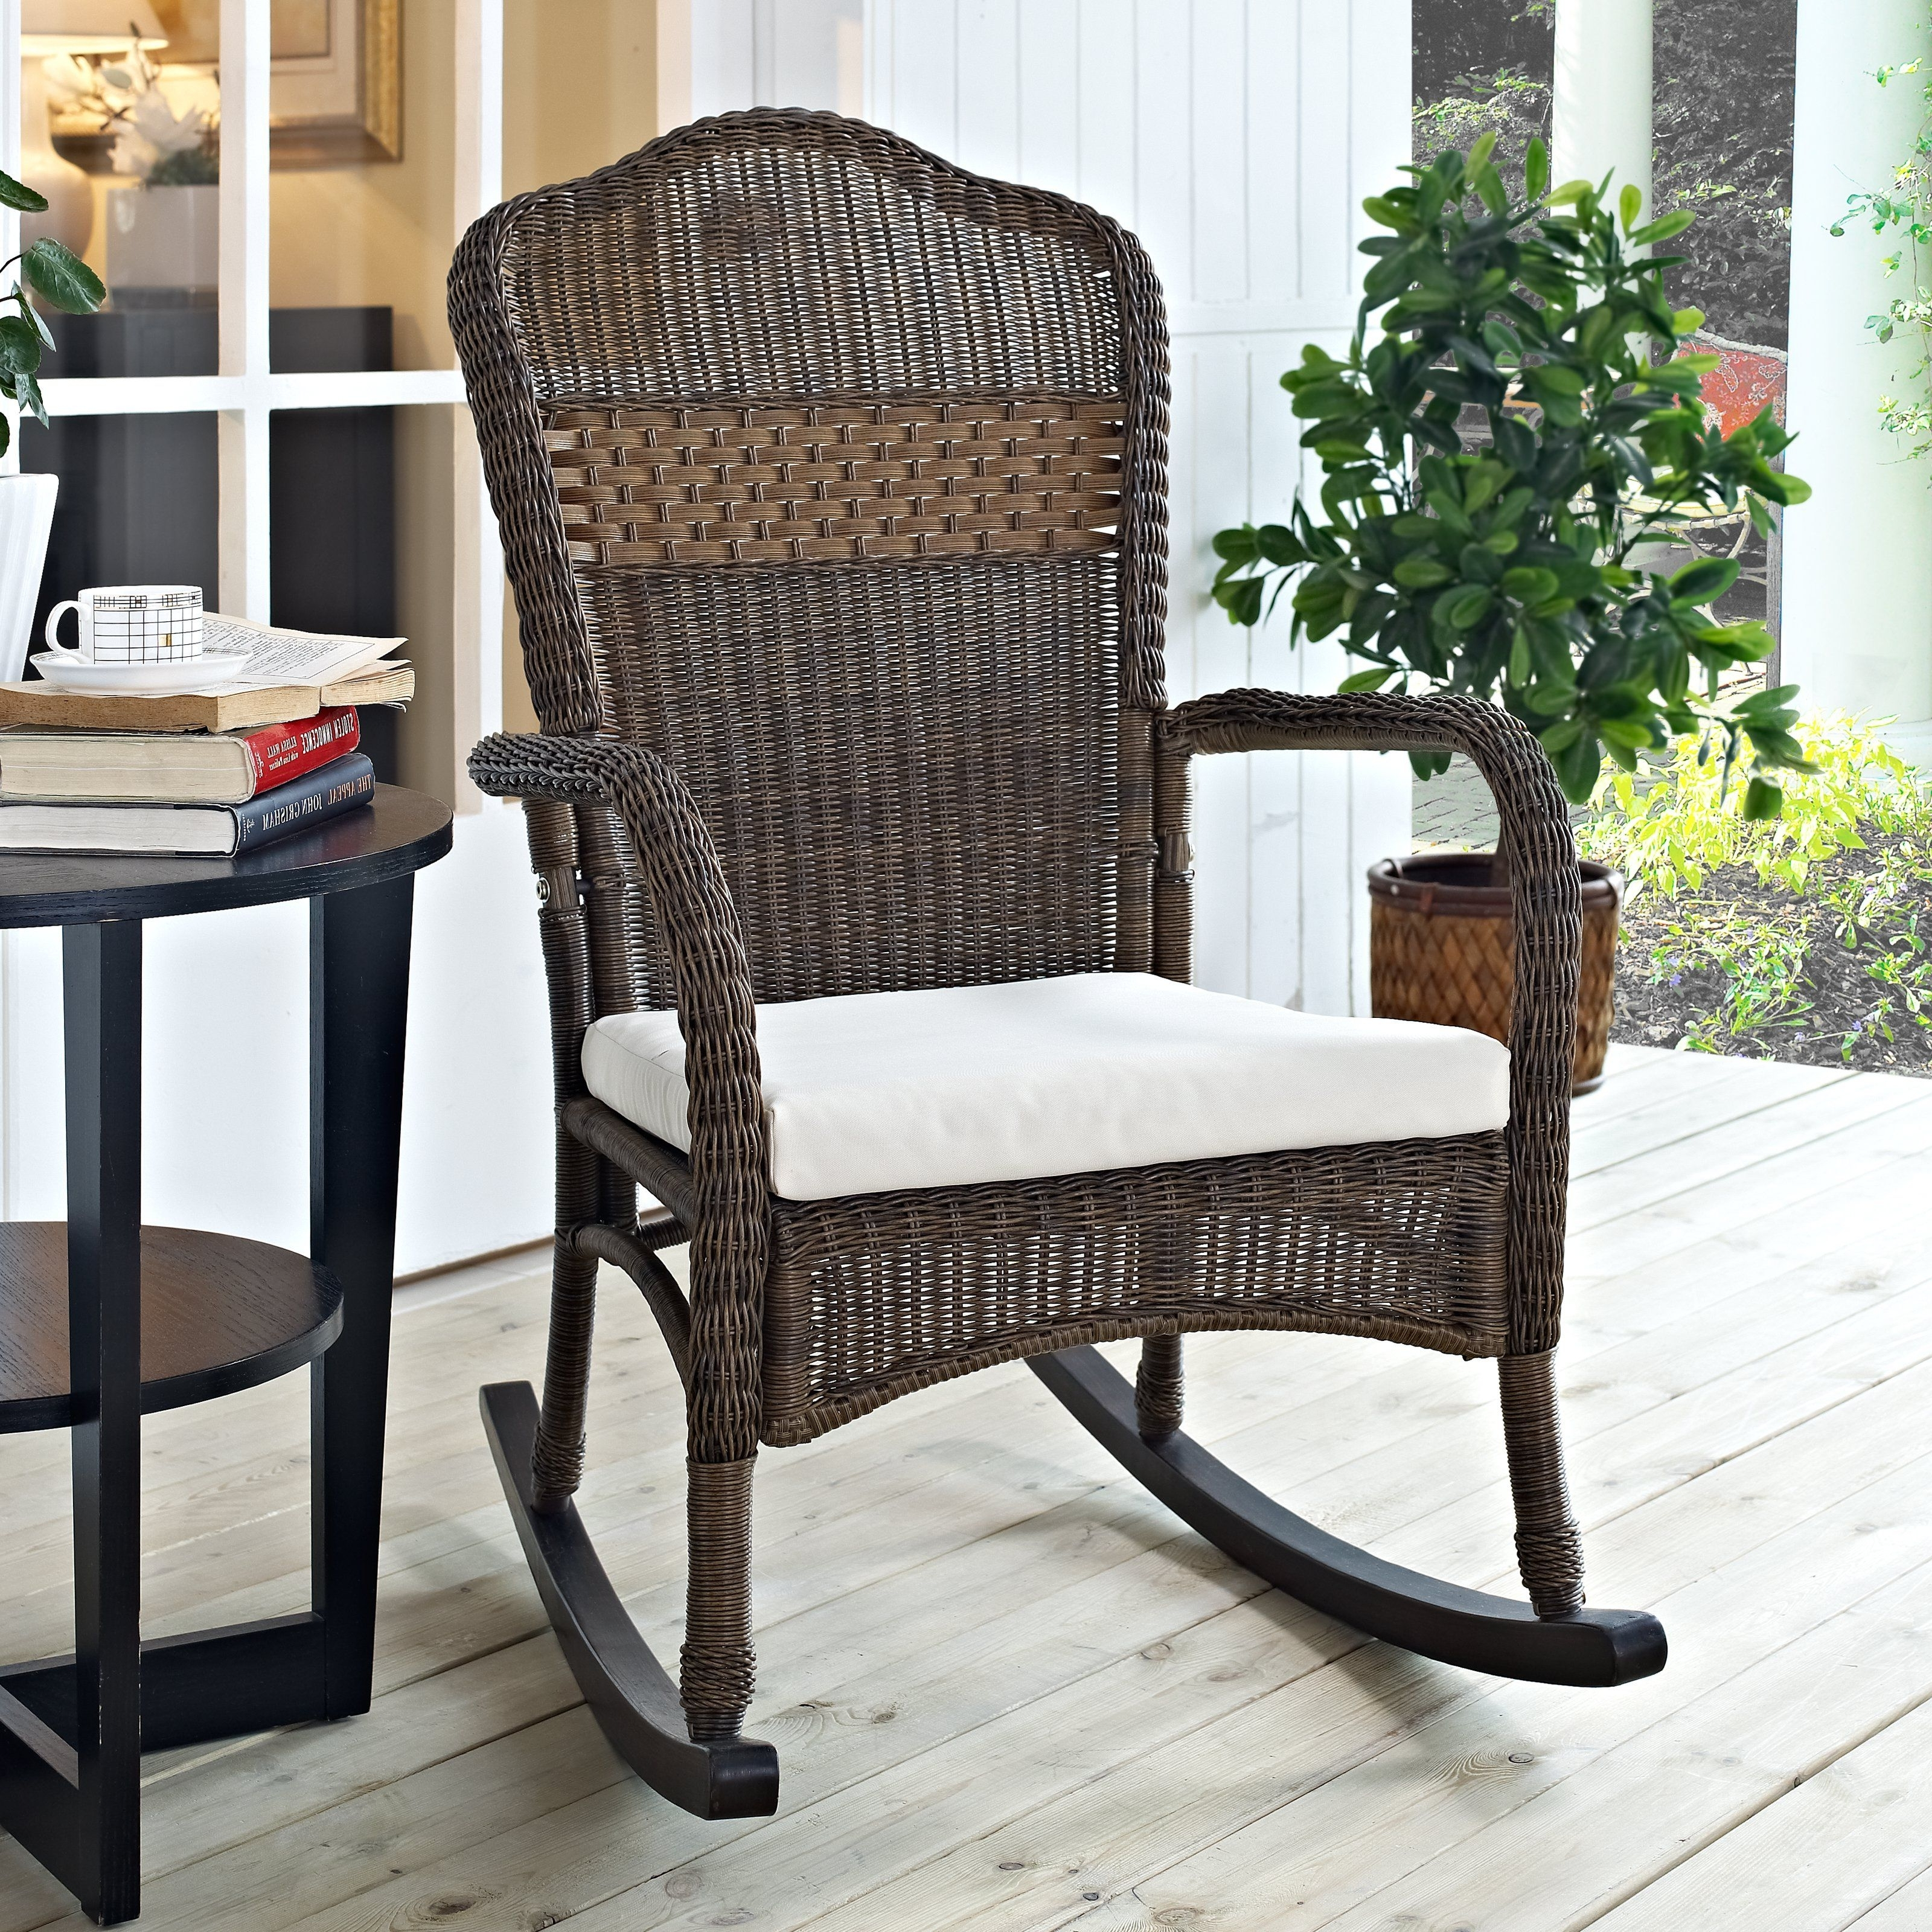 Newest Outdoor Coral Coast Mocha Resin Wicker Rocking Chair With Beige With Wicker Rocking Chairs For Outdoors (Gallery 3 of 20)